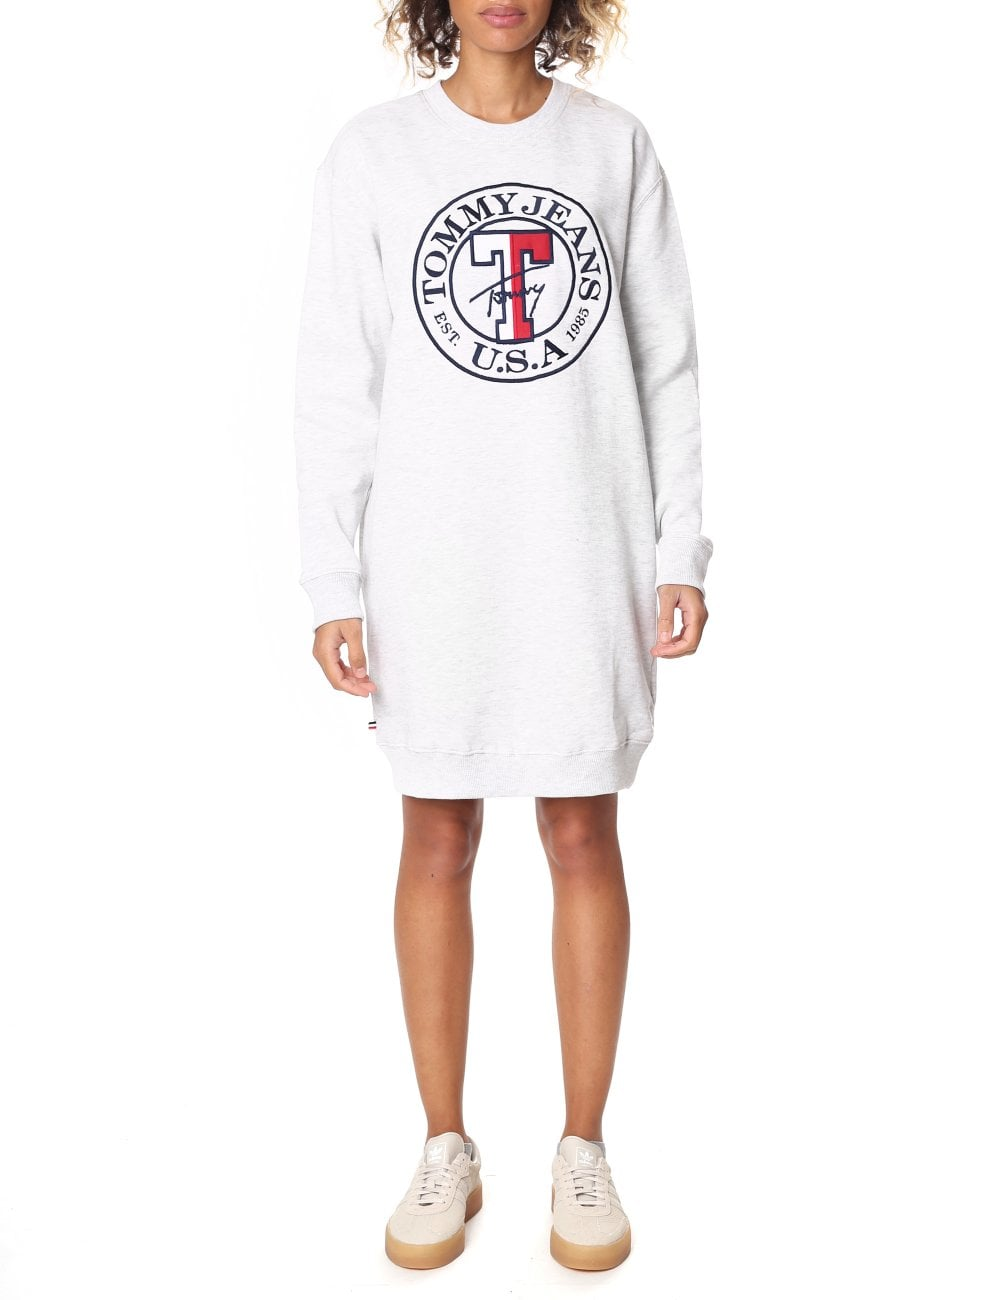 e7b7c2c34996 Tommy Hilfiger Women's Long Sleeve Sweatshirt Dress